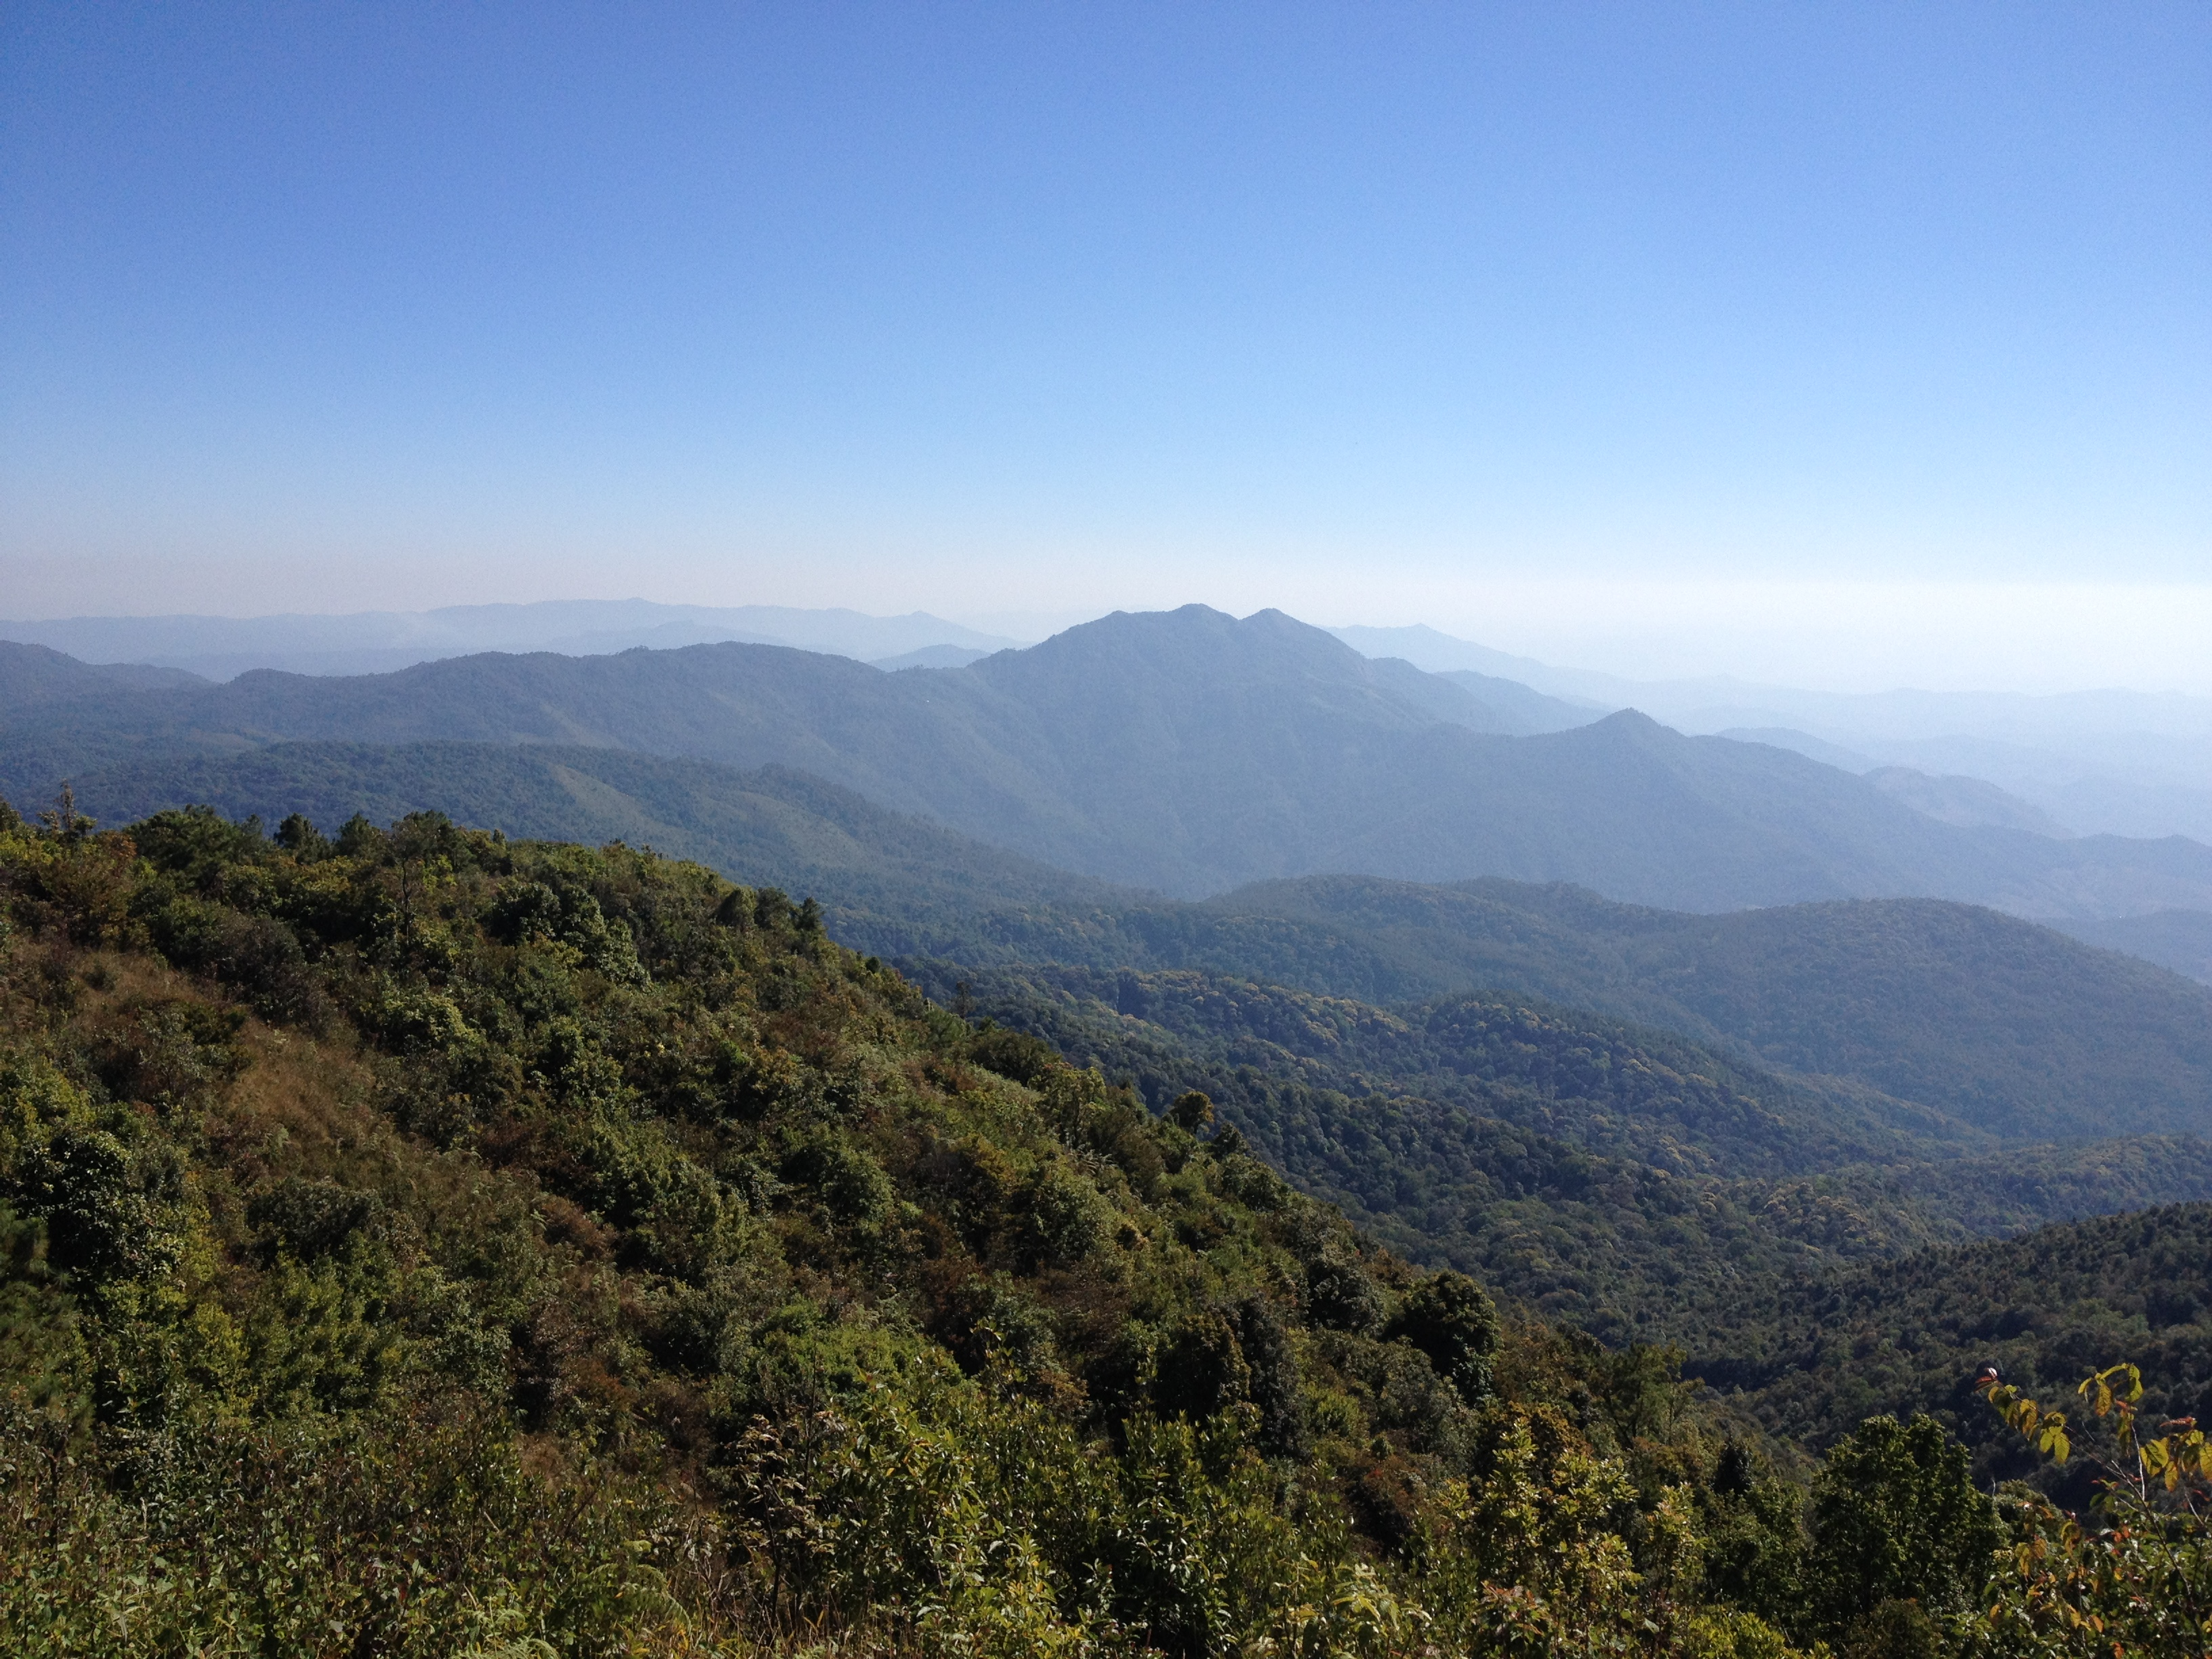 The view from Doi Inthanon, the highest mountain in Thailand